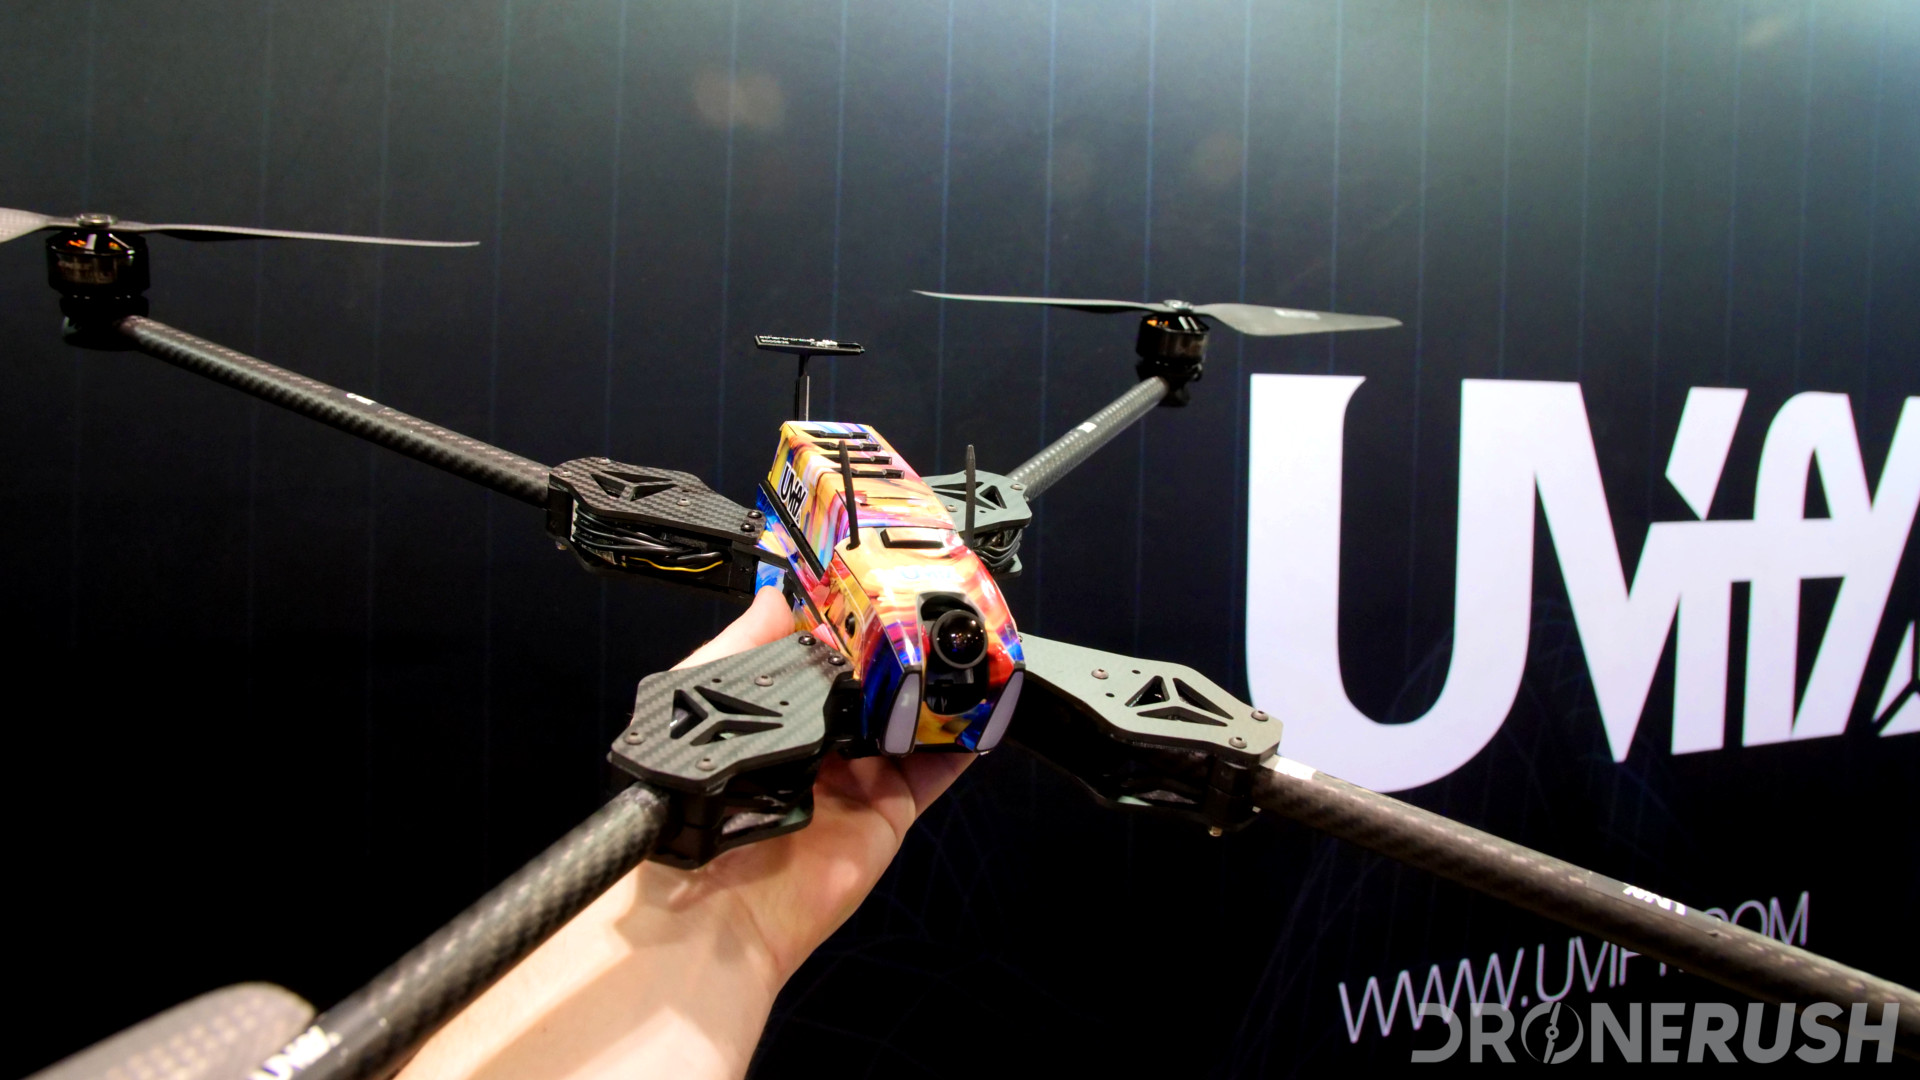 Uvify Draco extended propeller arms modular design